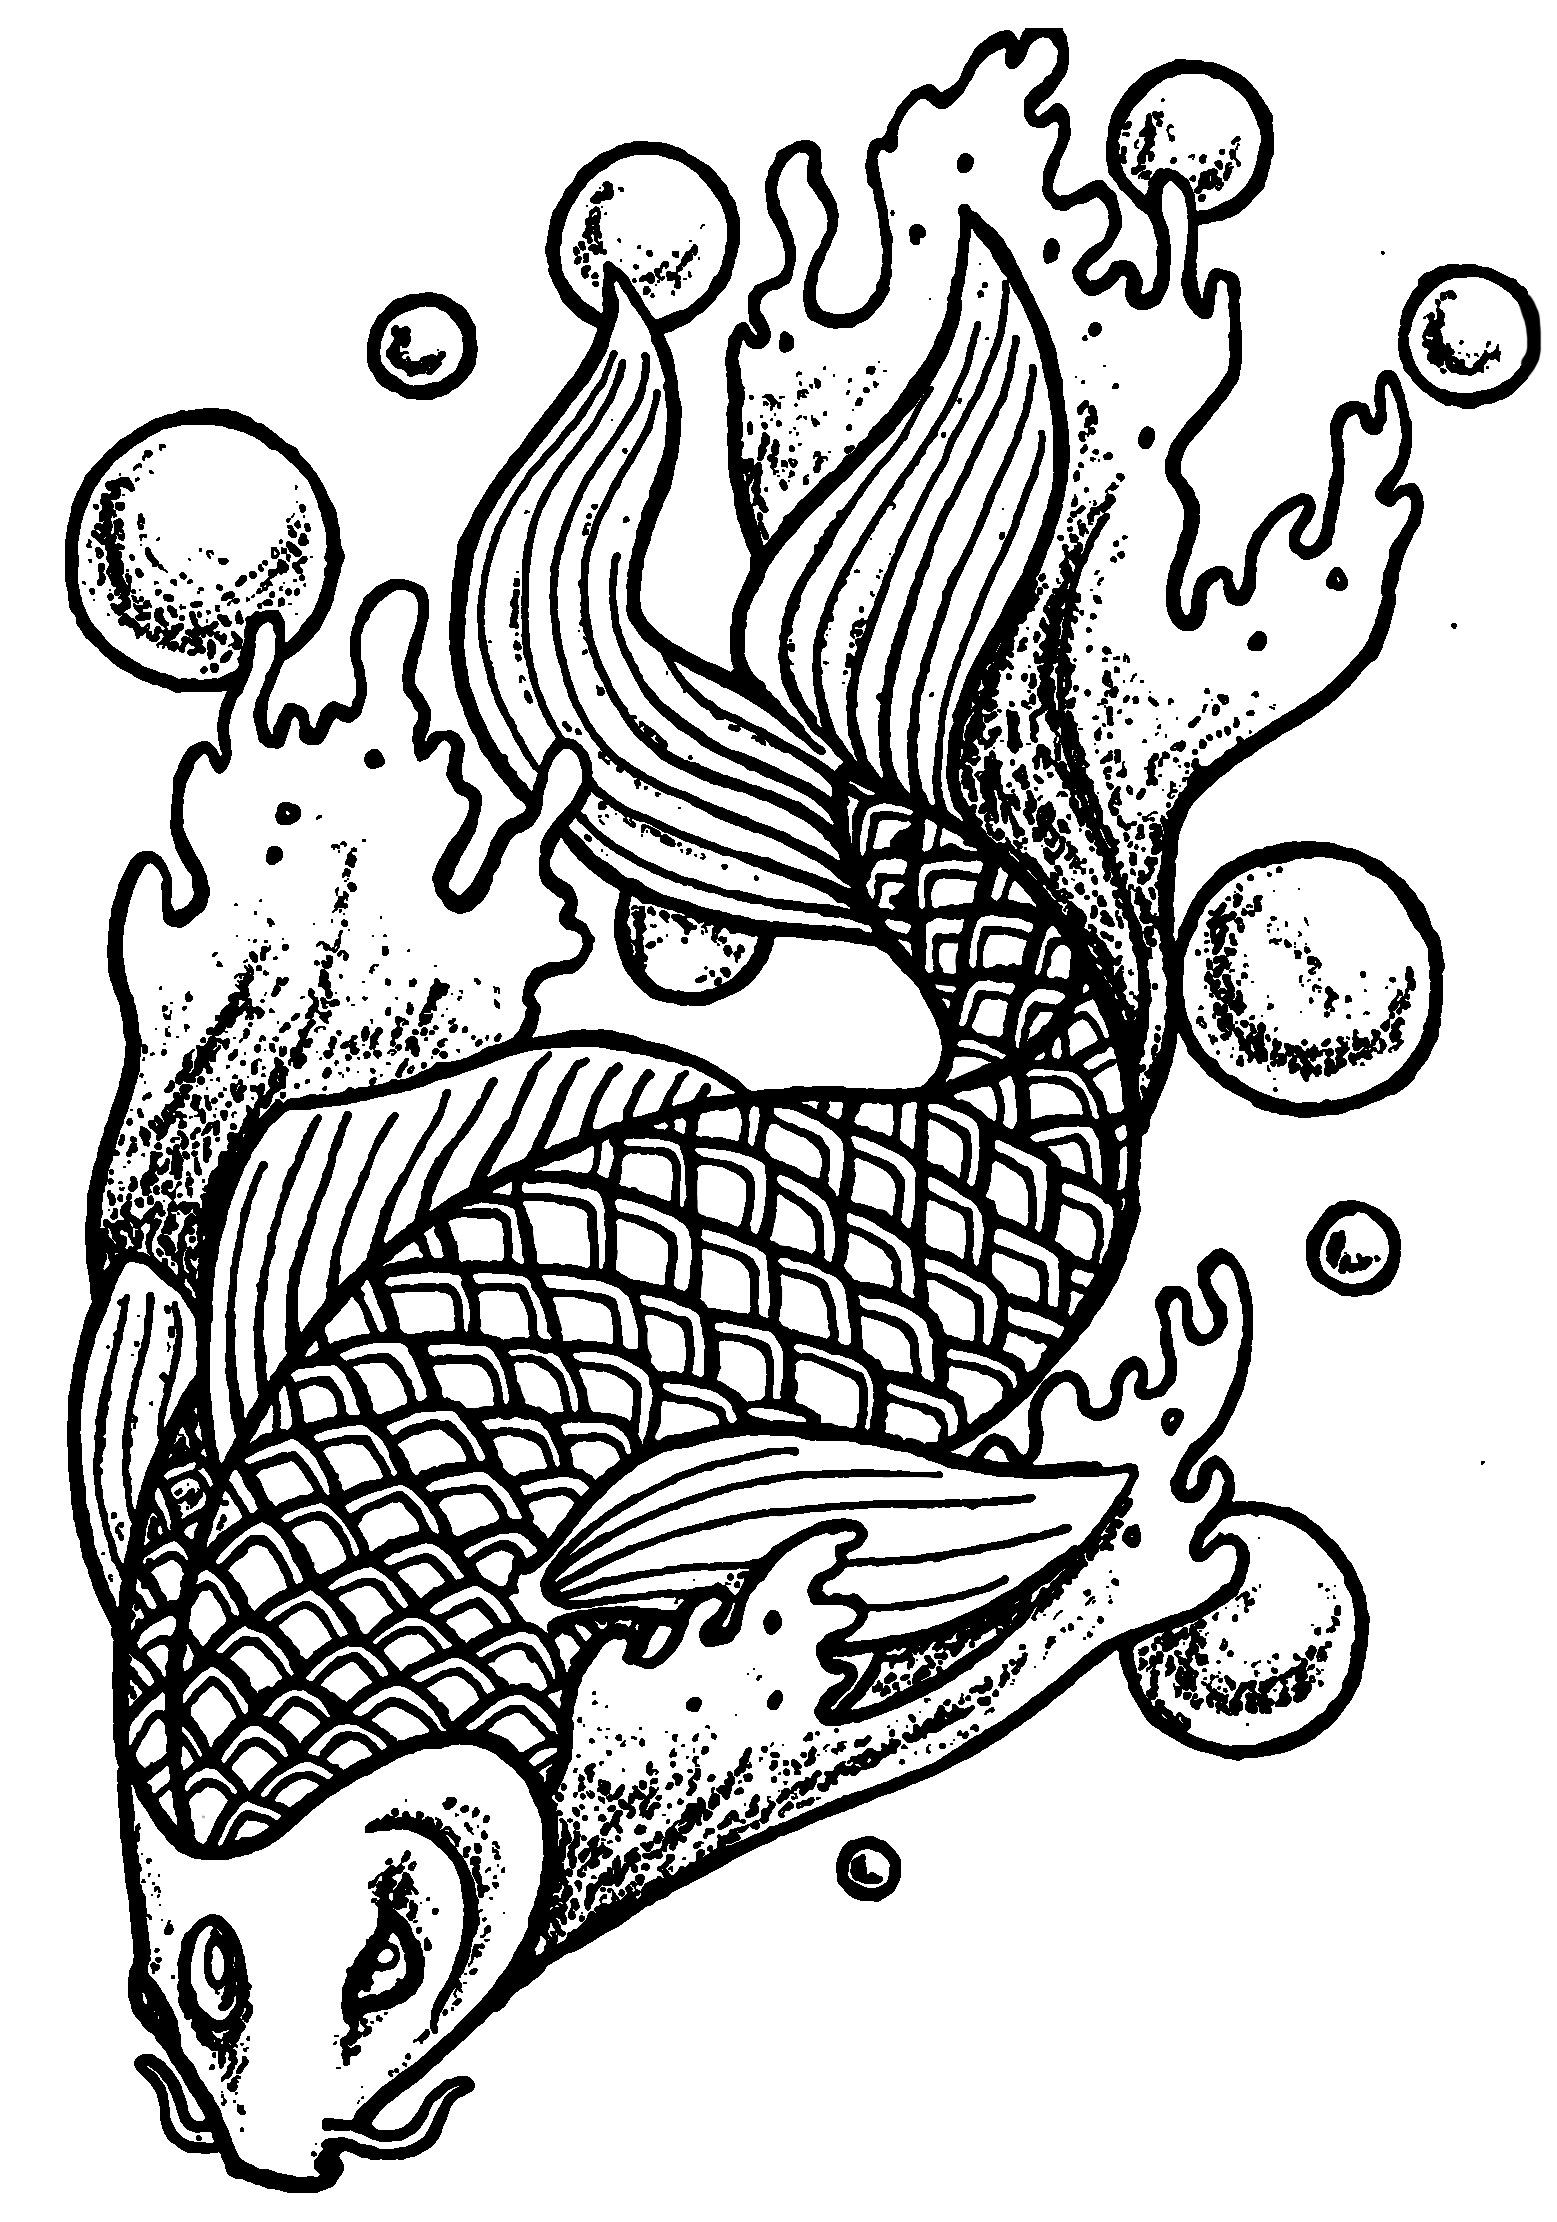 Free Pisces coloring page to print and color